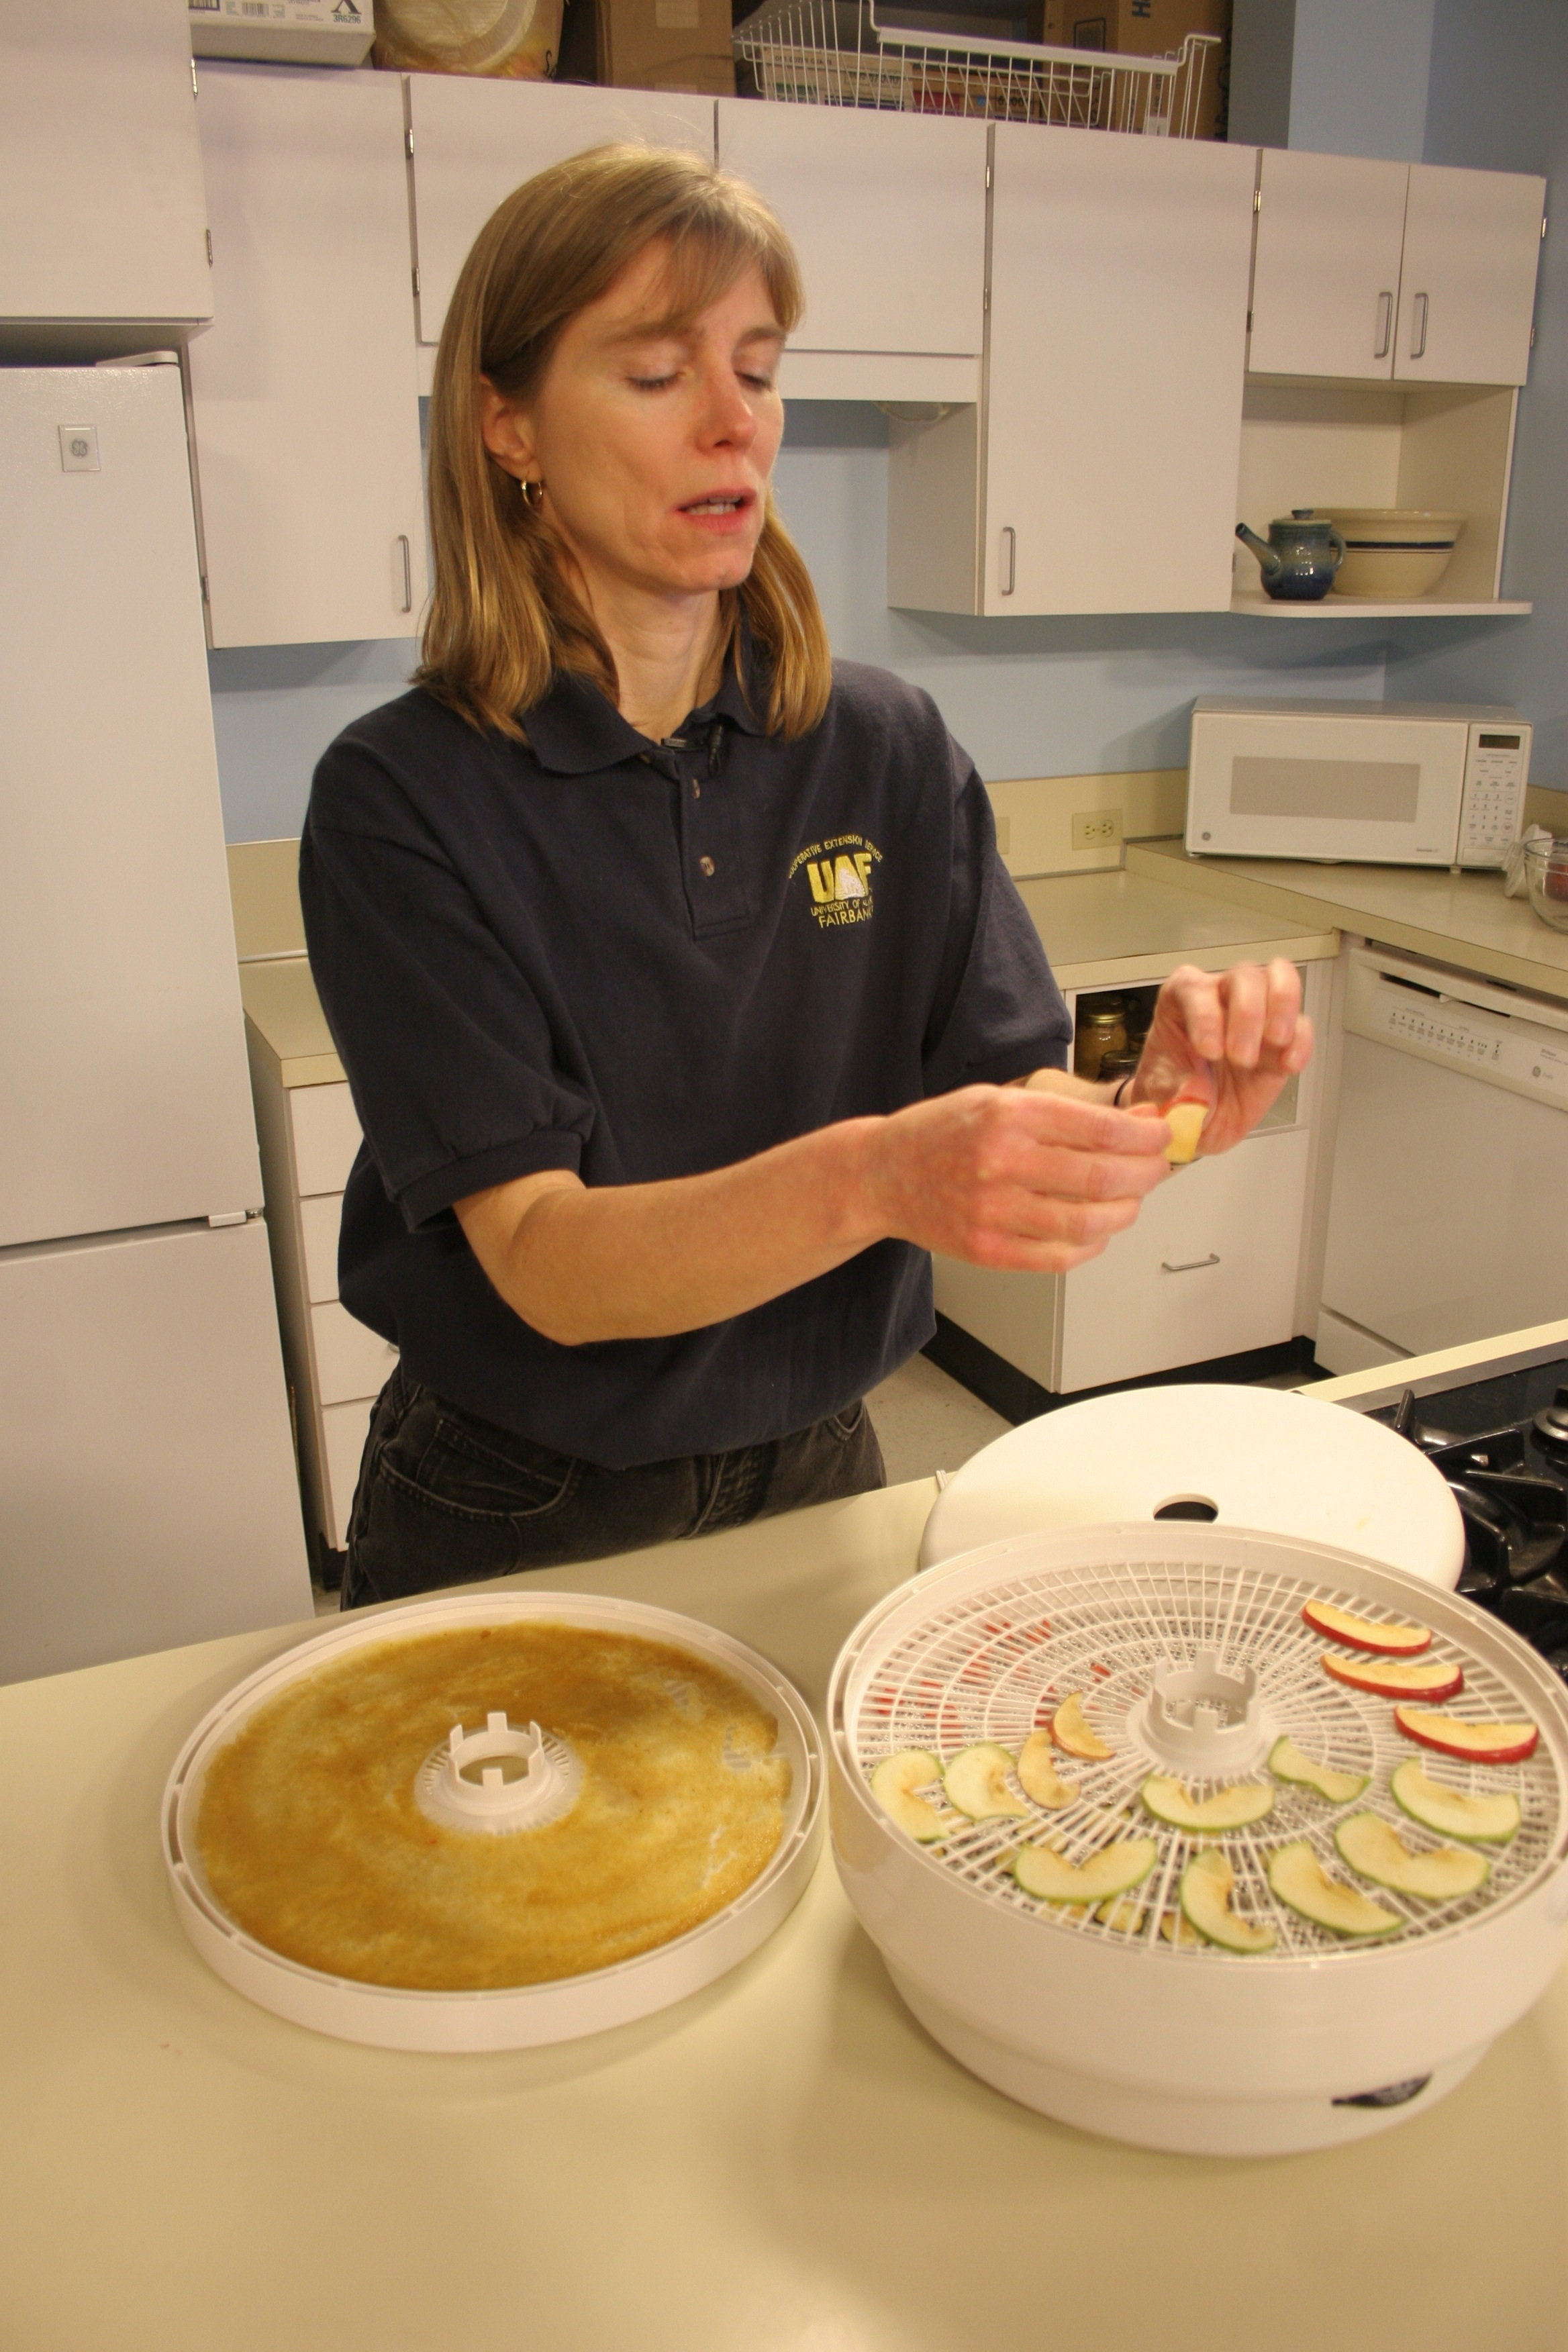 Julie Cascio of UAF Cooperative Extension Service's Health, Home and Family Development program in the Palmer/Mat-Su district demonstrates how to dry apples